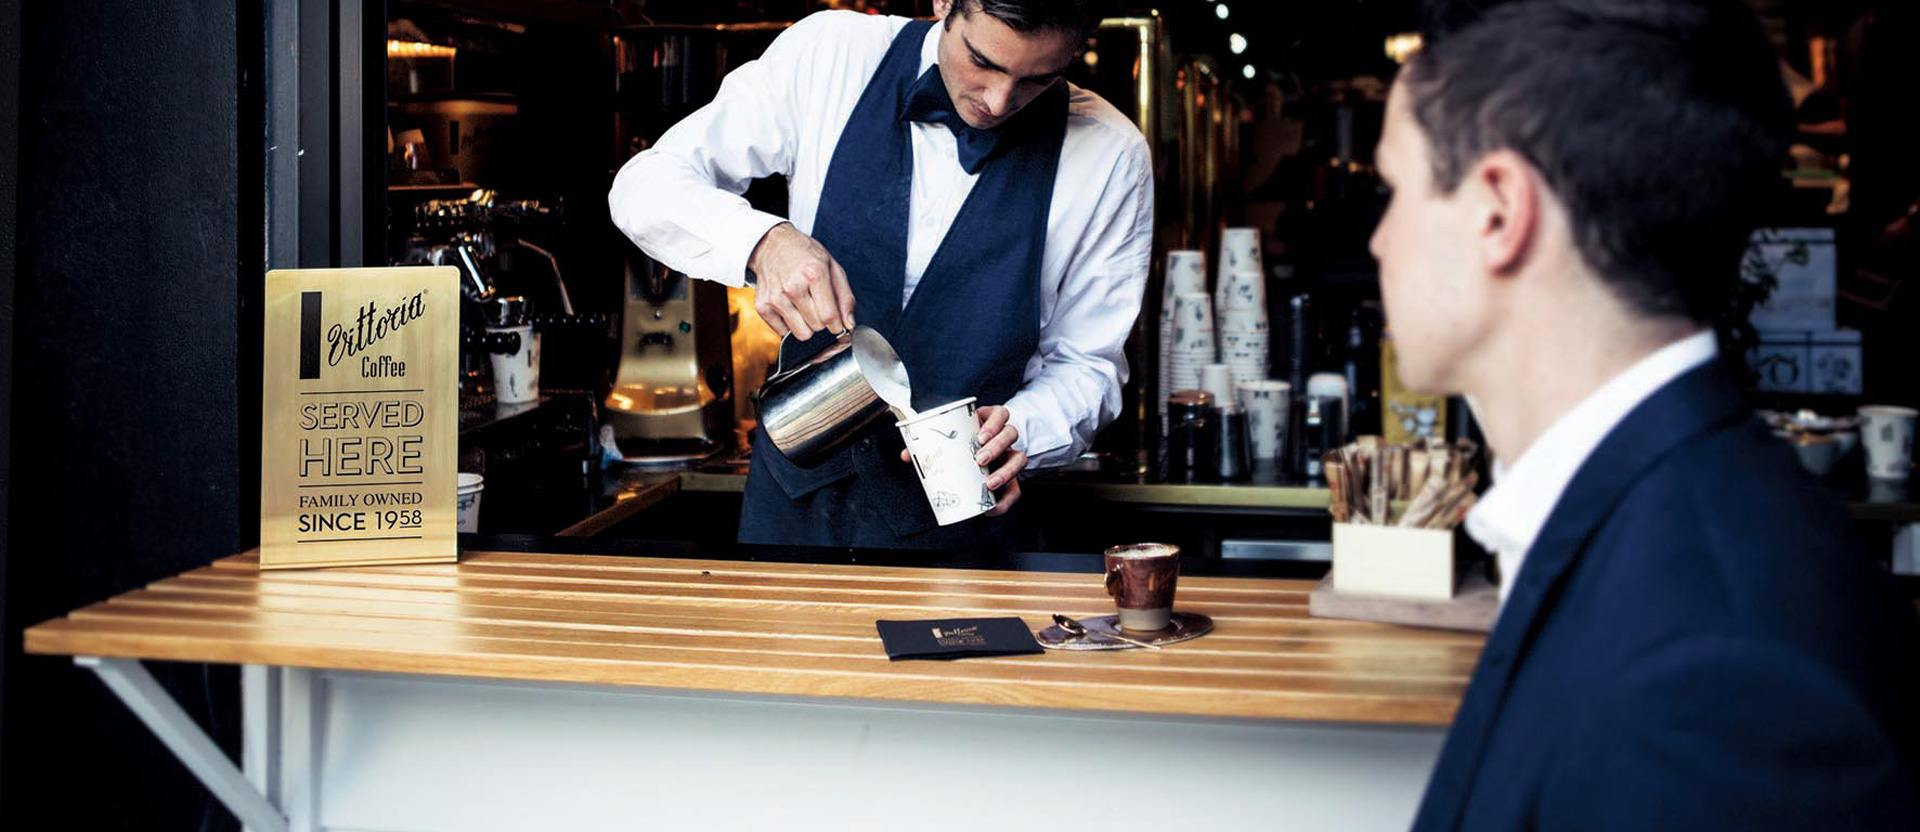 A Vittoria Coffee barista pours a coffee at L'Americano Espresso cafe